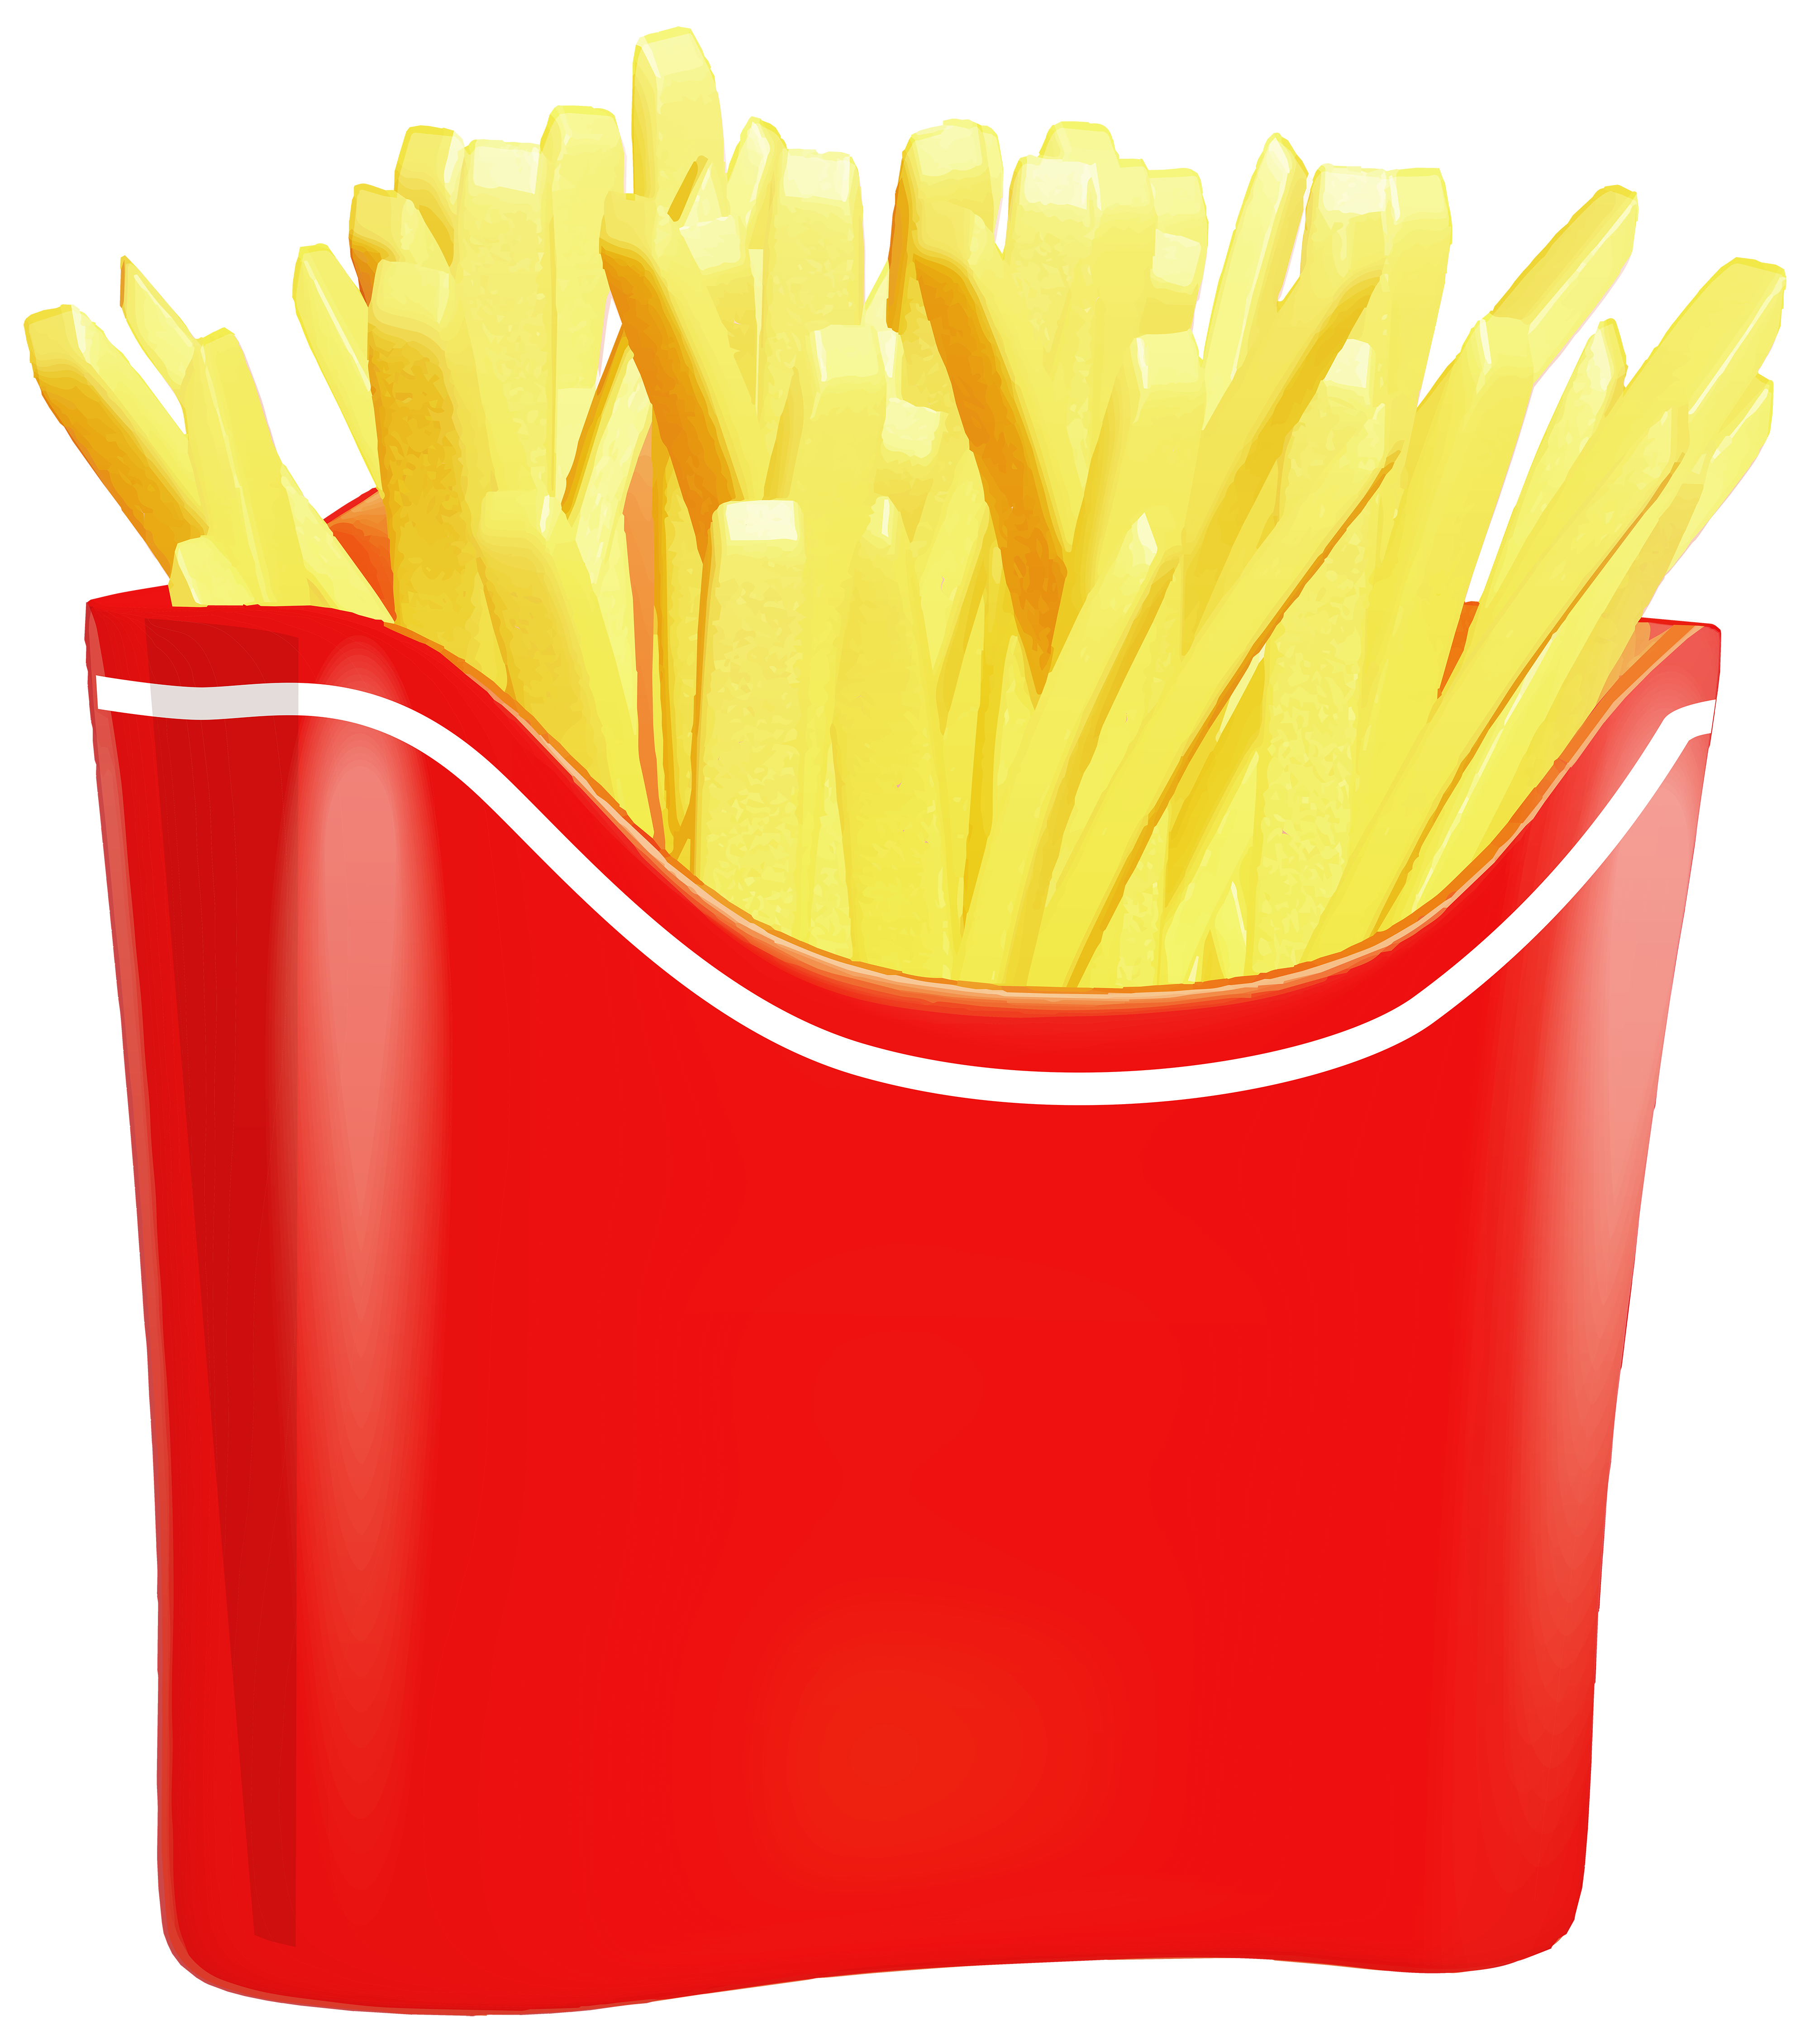 French png clip art. Fries clipart